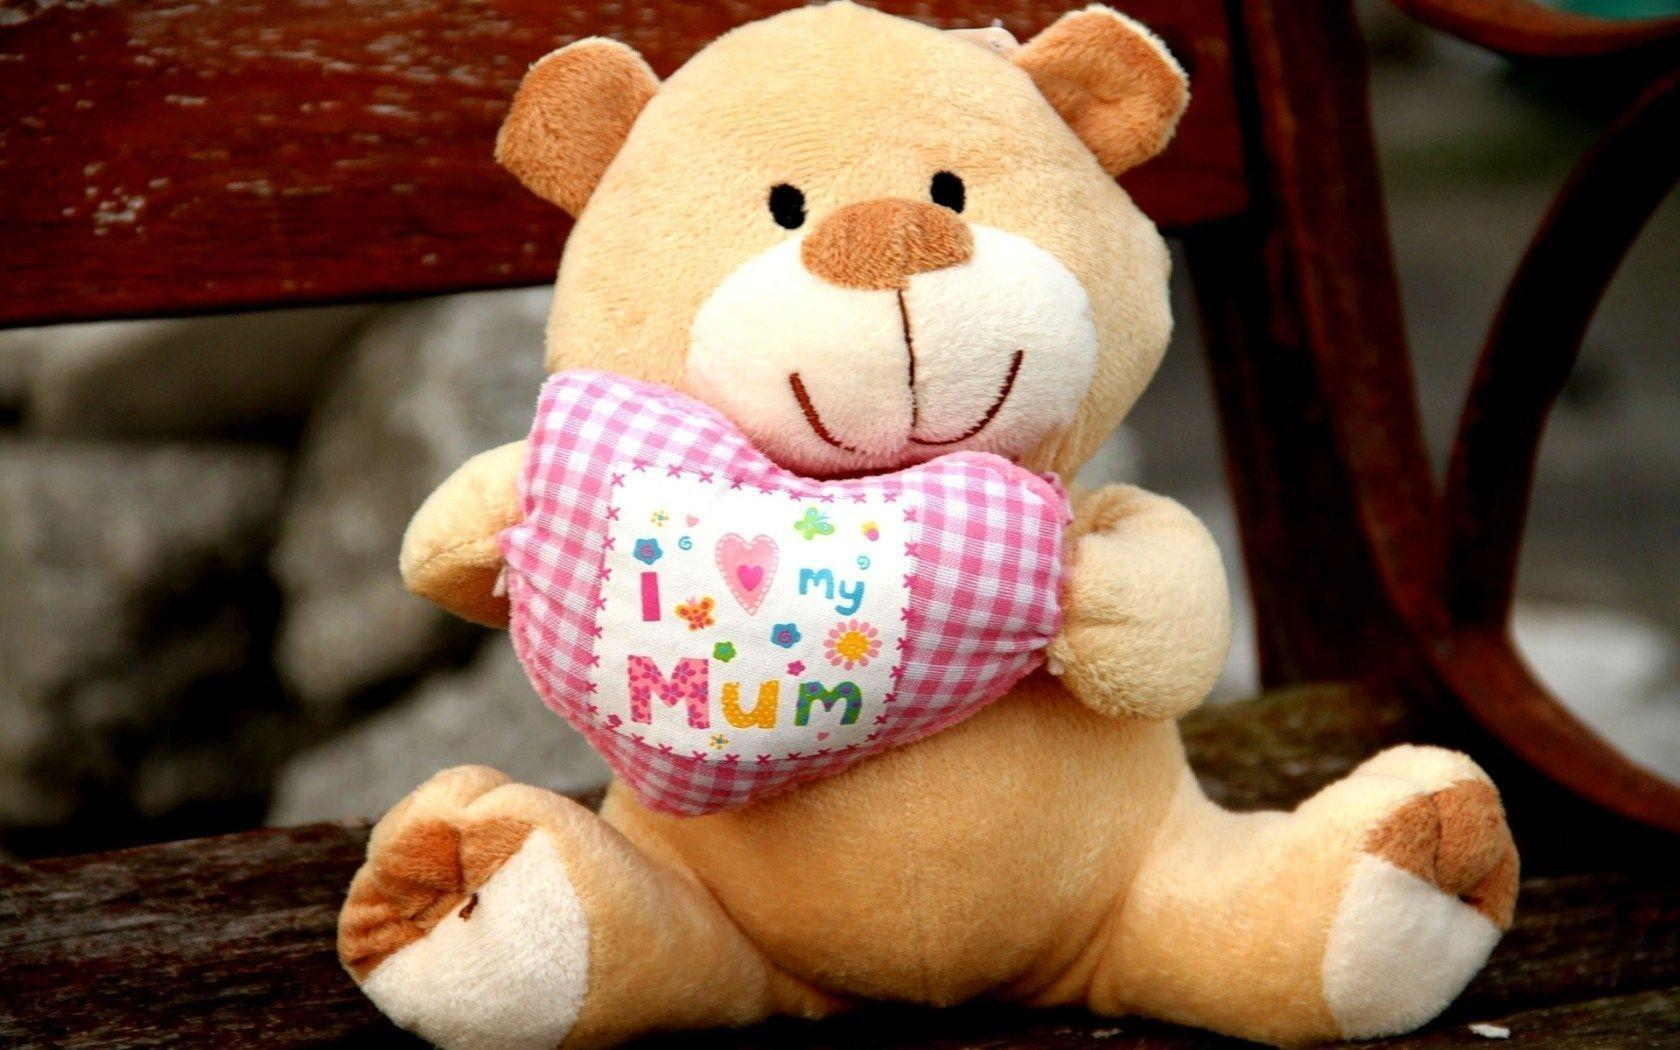 Cute teddy bear wallpapers wallpaper cave wallpapers for cute teddy bear and love wallpapers download voltagebd Image collections